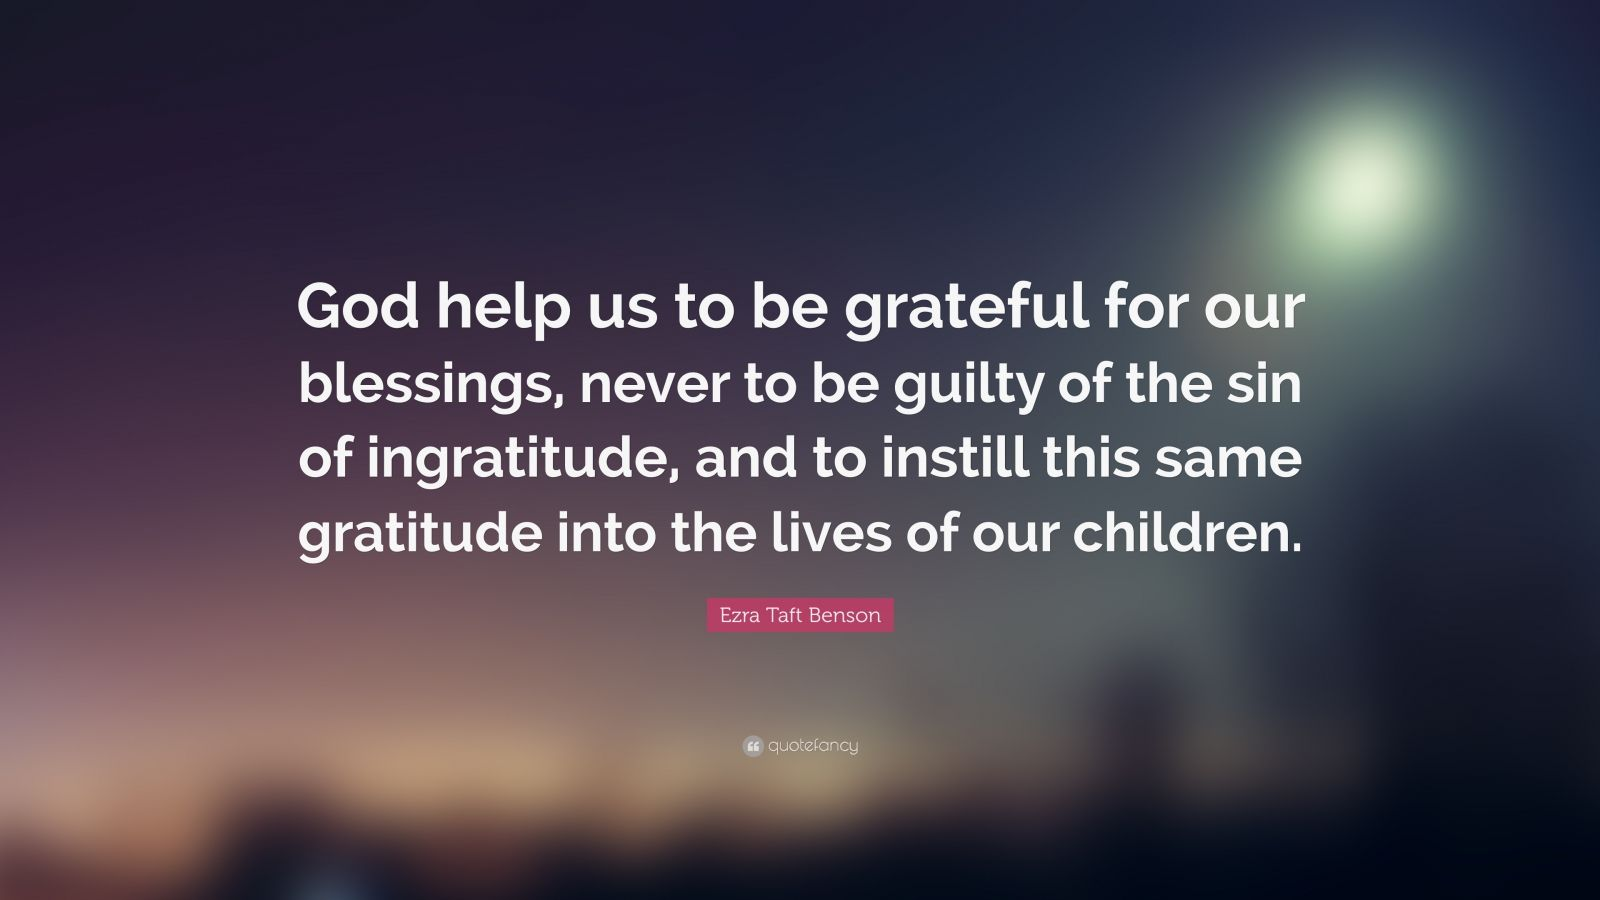 """Ezra Taft Benson Quote: """"God help us to be grateful for our blessings, never to be guilty of the sin of ingratitude, and to instill this same gratitude into the lives of our children."""""""